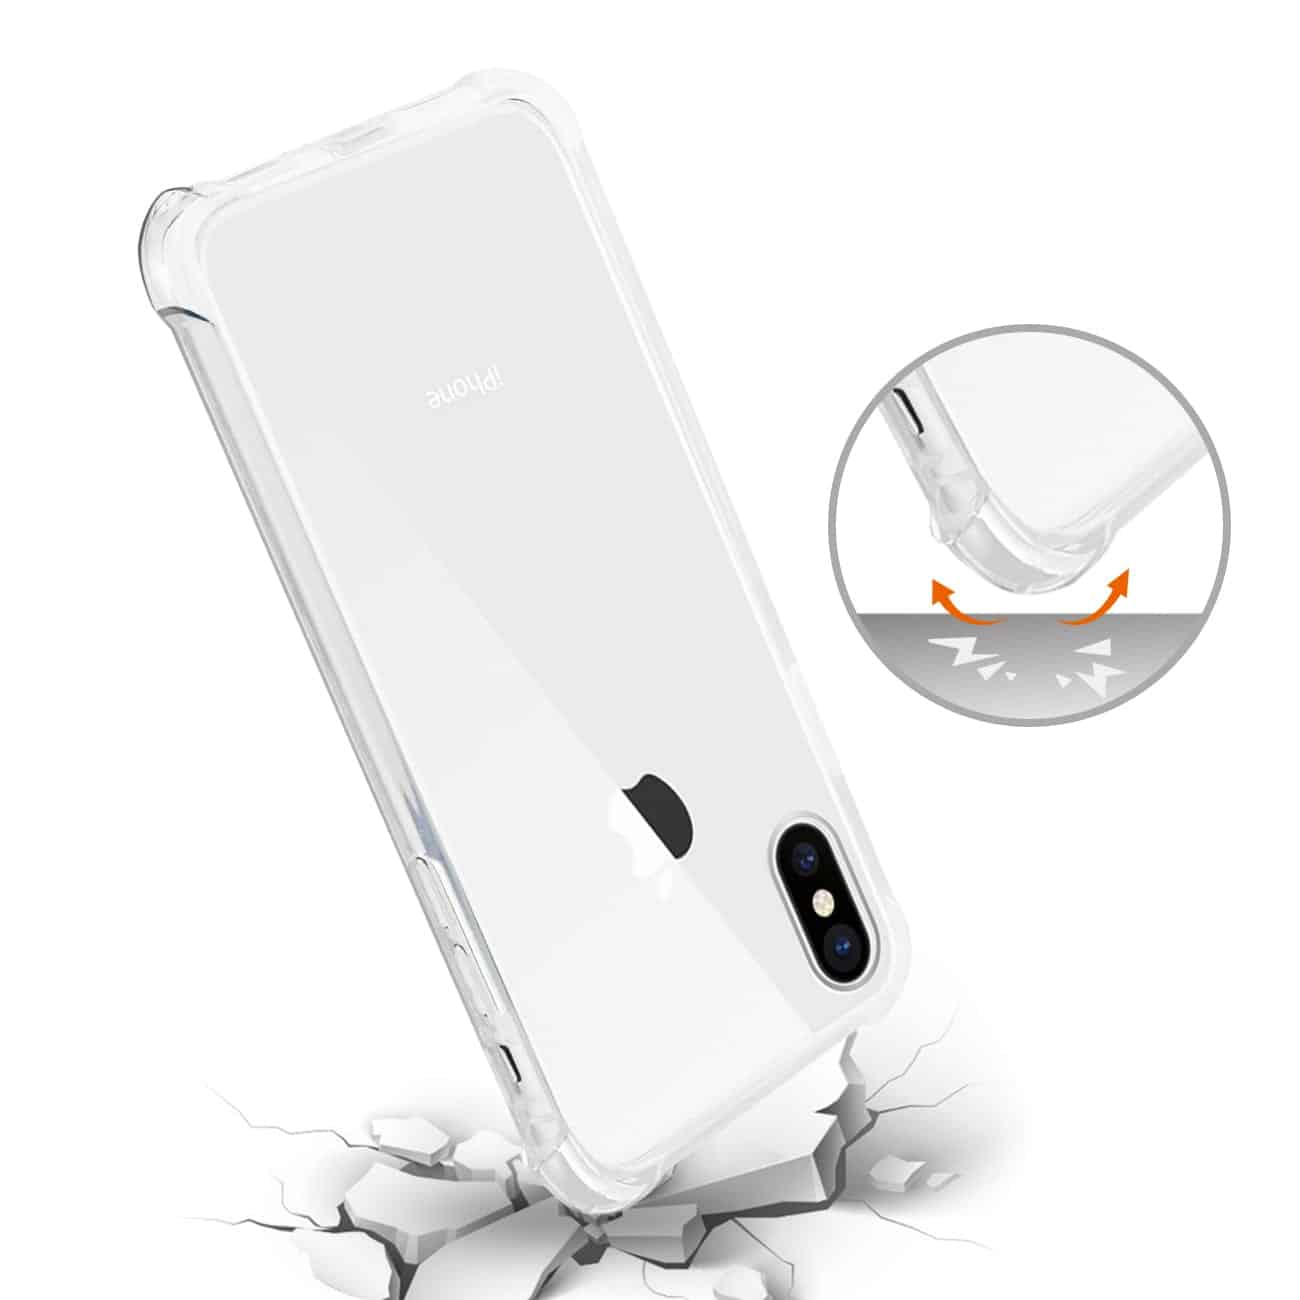 iPhone X/iPhone XS CLEAR BUMPER CASE WITH AIR CUSHION PROTECTION IN CLEAR